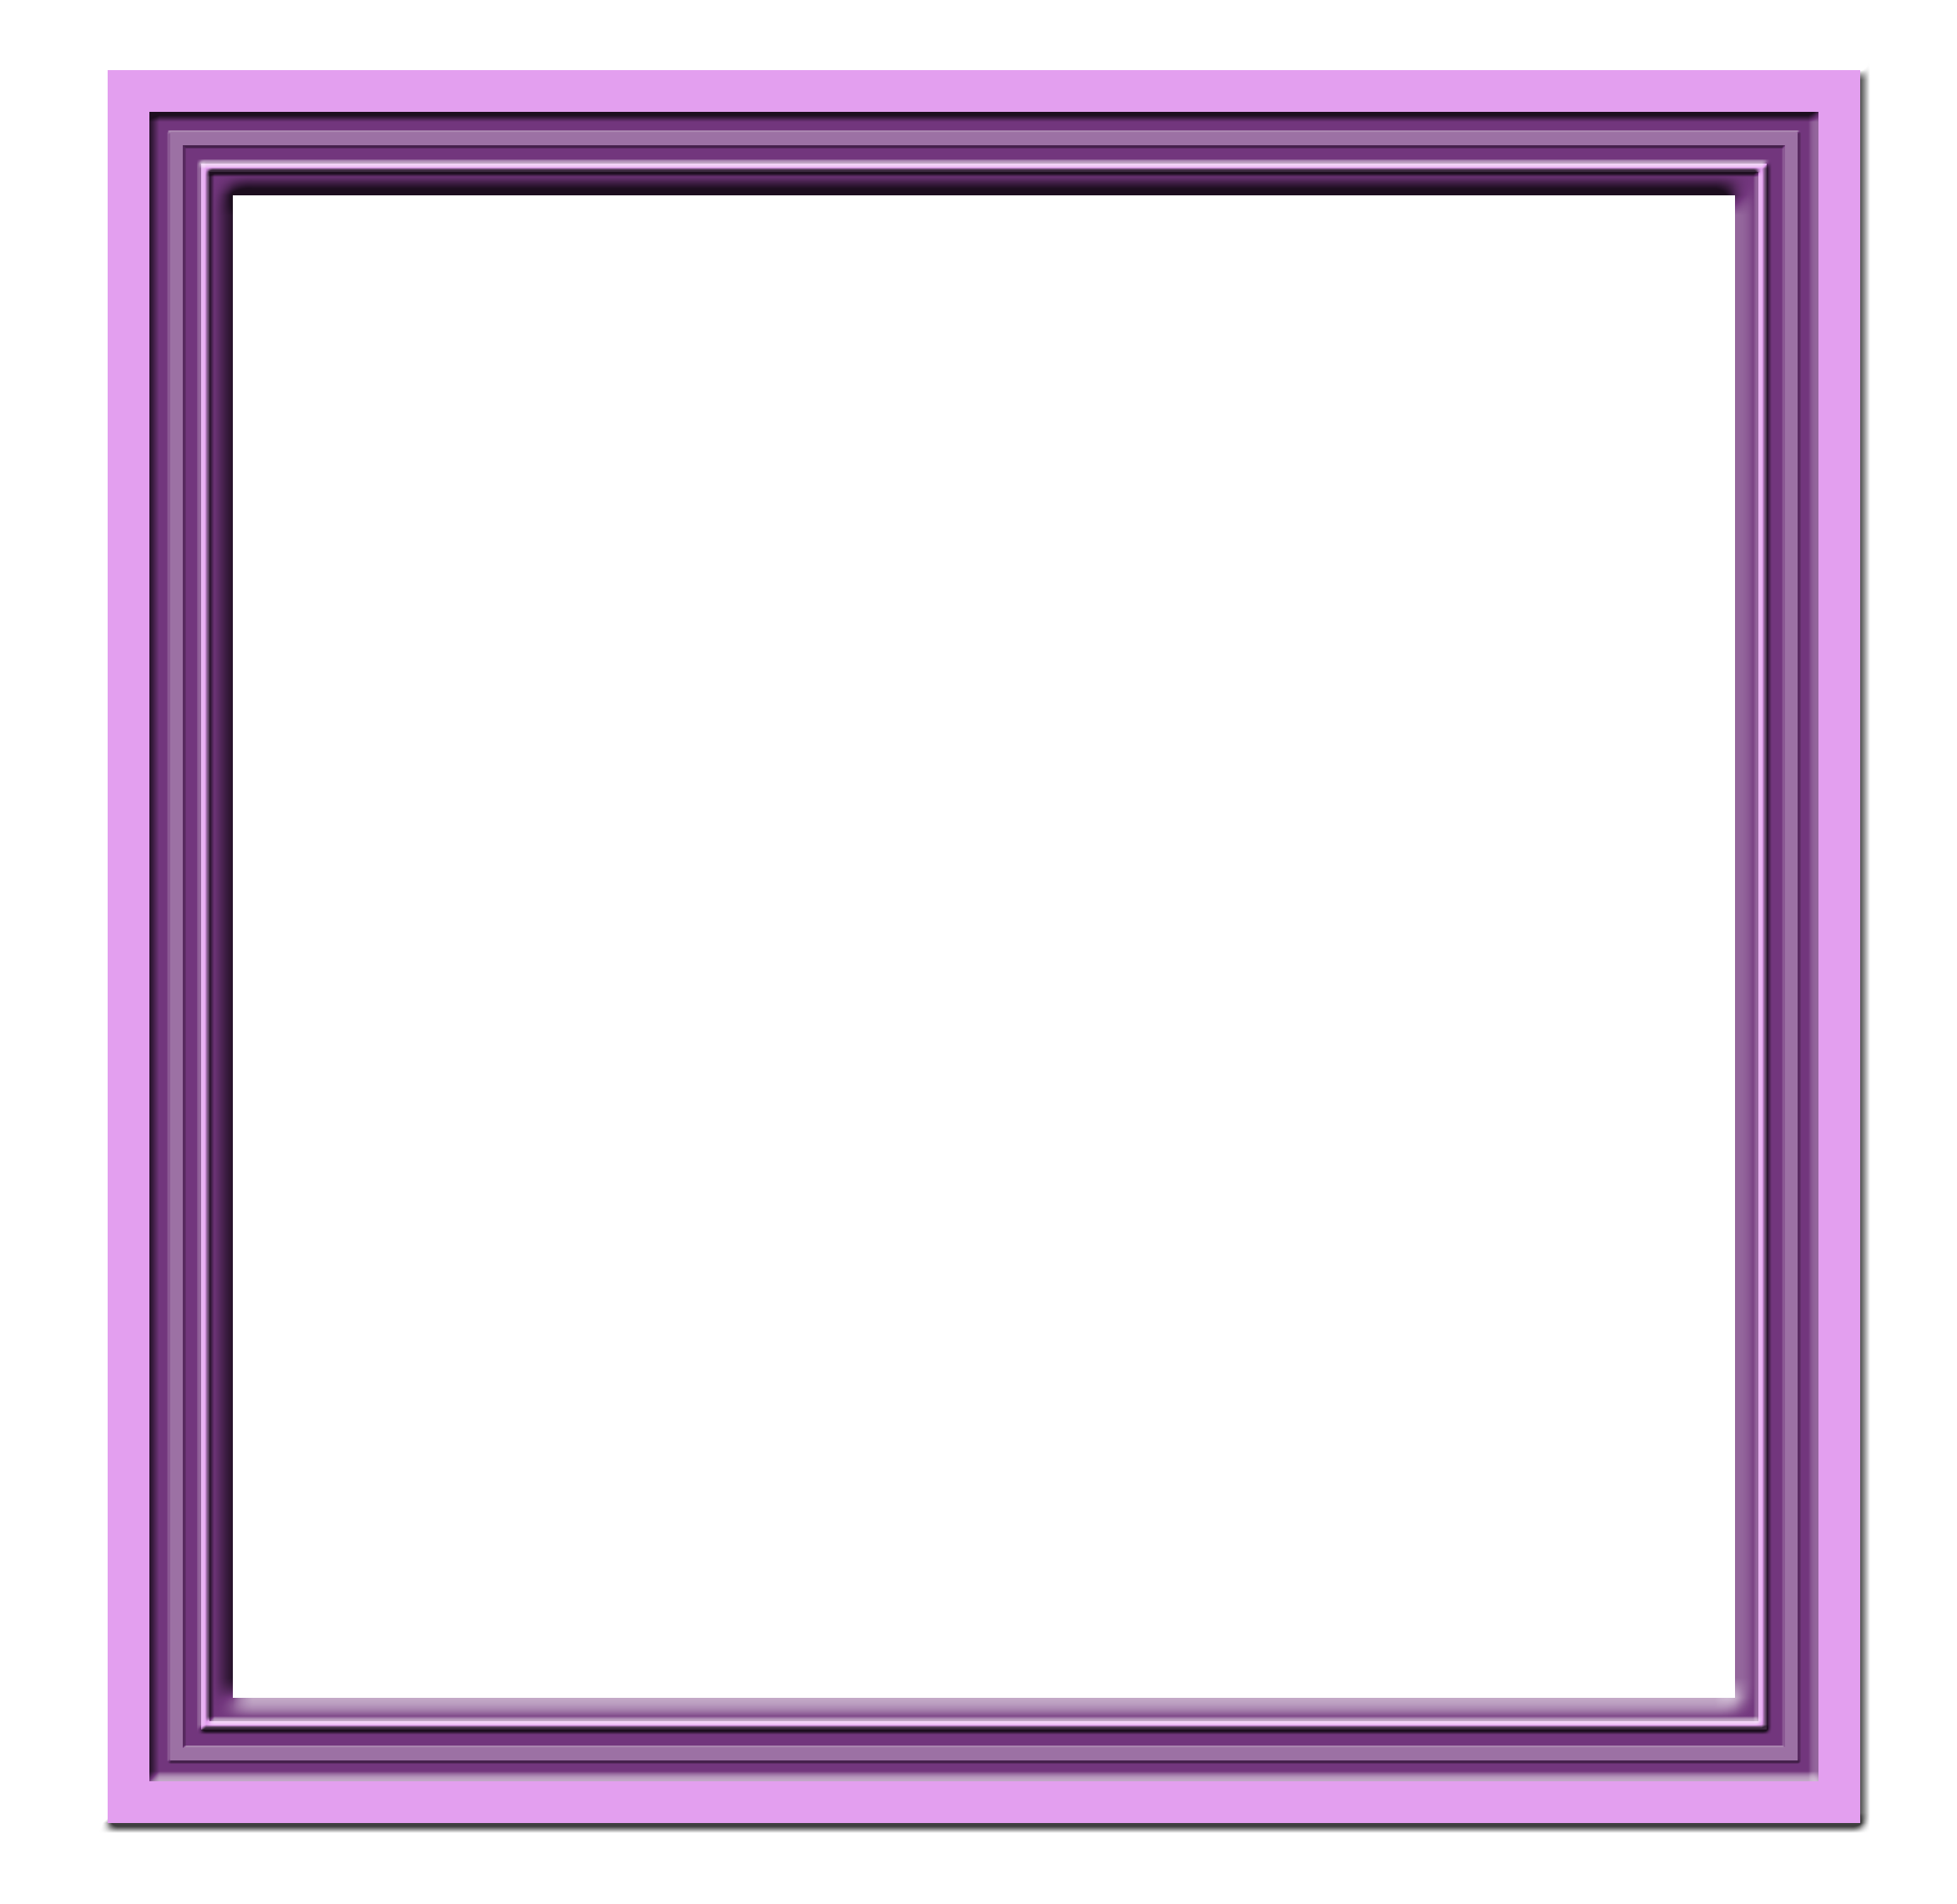 Photoshop borders png. Free frames and templates